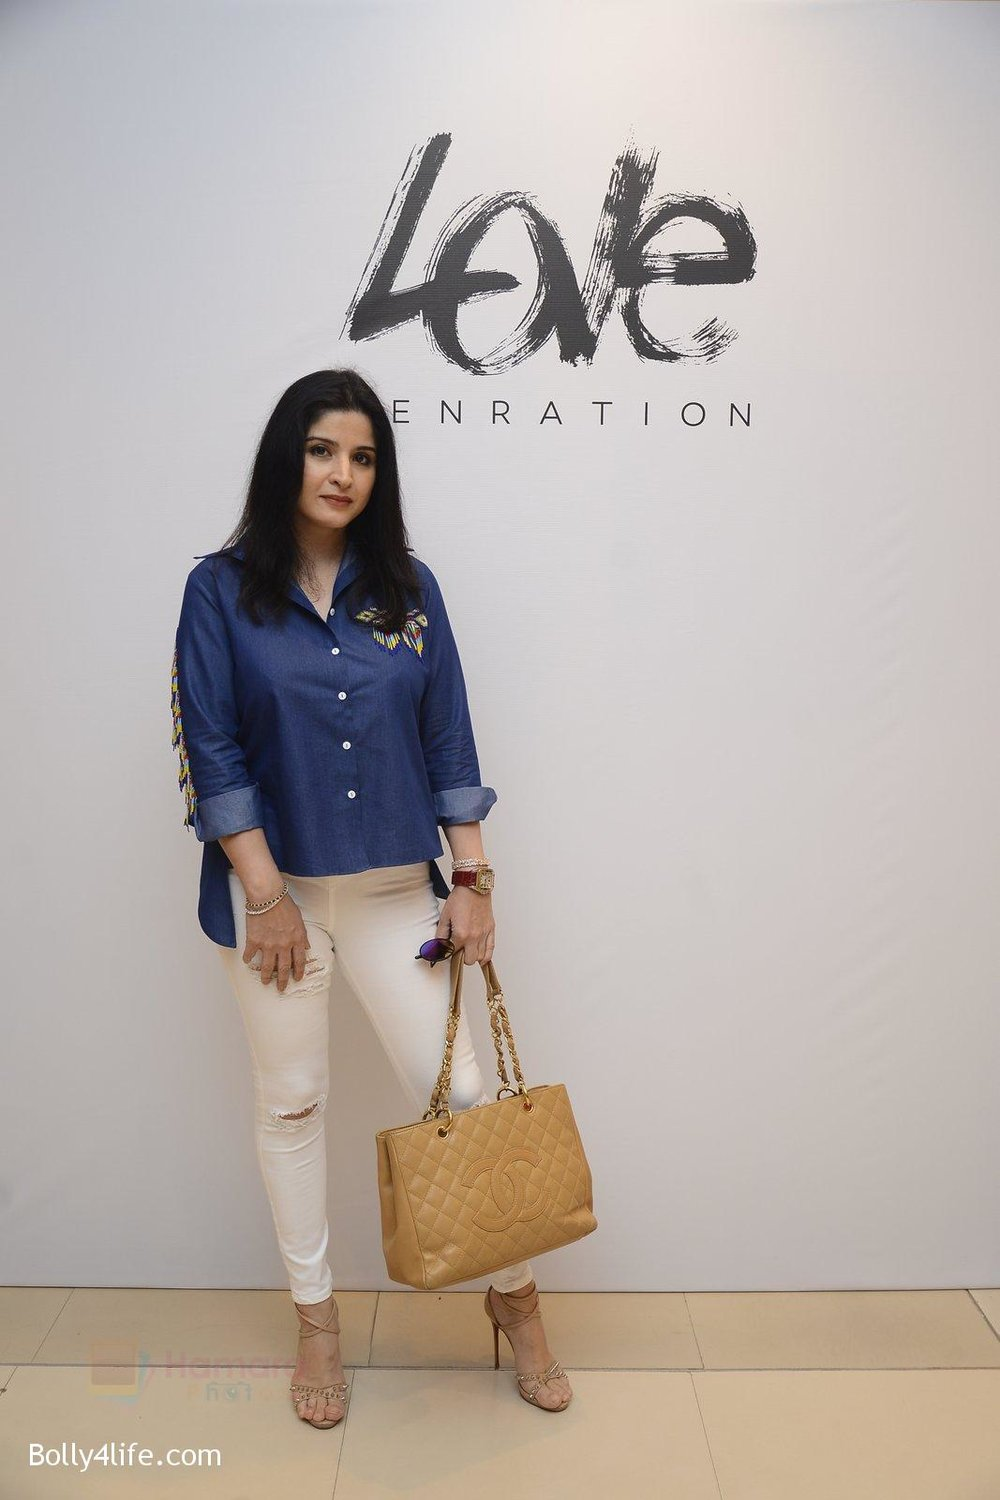 Maheep-Kapoor-at-Love-Generation-launch-at-Shoppers-Stop-on-7th-Oct-2016-72.jpg